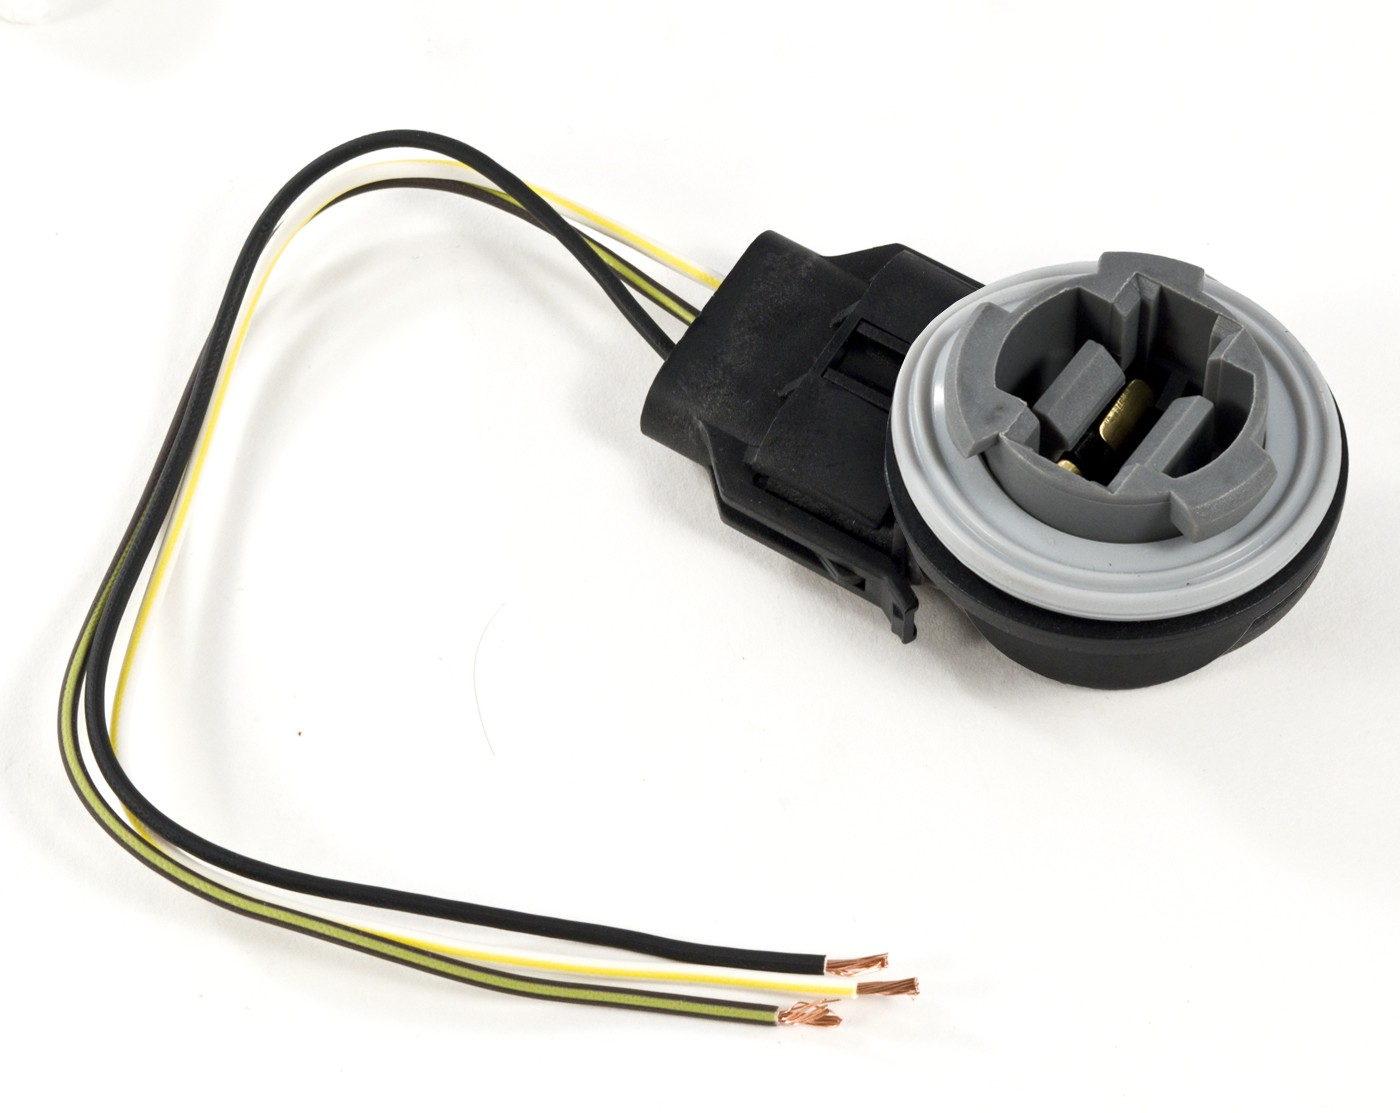 hight resolution of  parking turn signal 3157 light1994 1998 mustang or cobra front parking turn signal 3157 light socket connector u0026 wiring harness 1994 2004 mustang